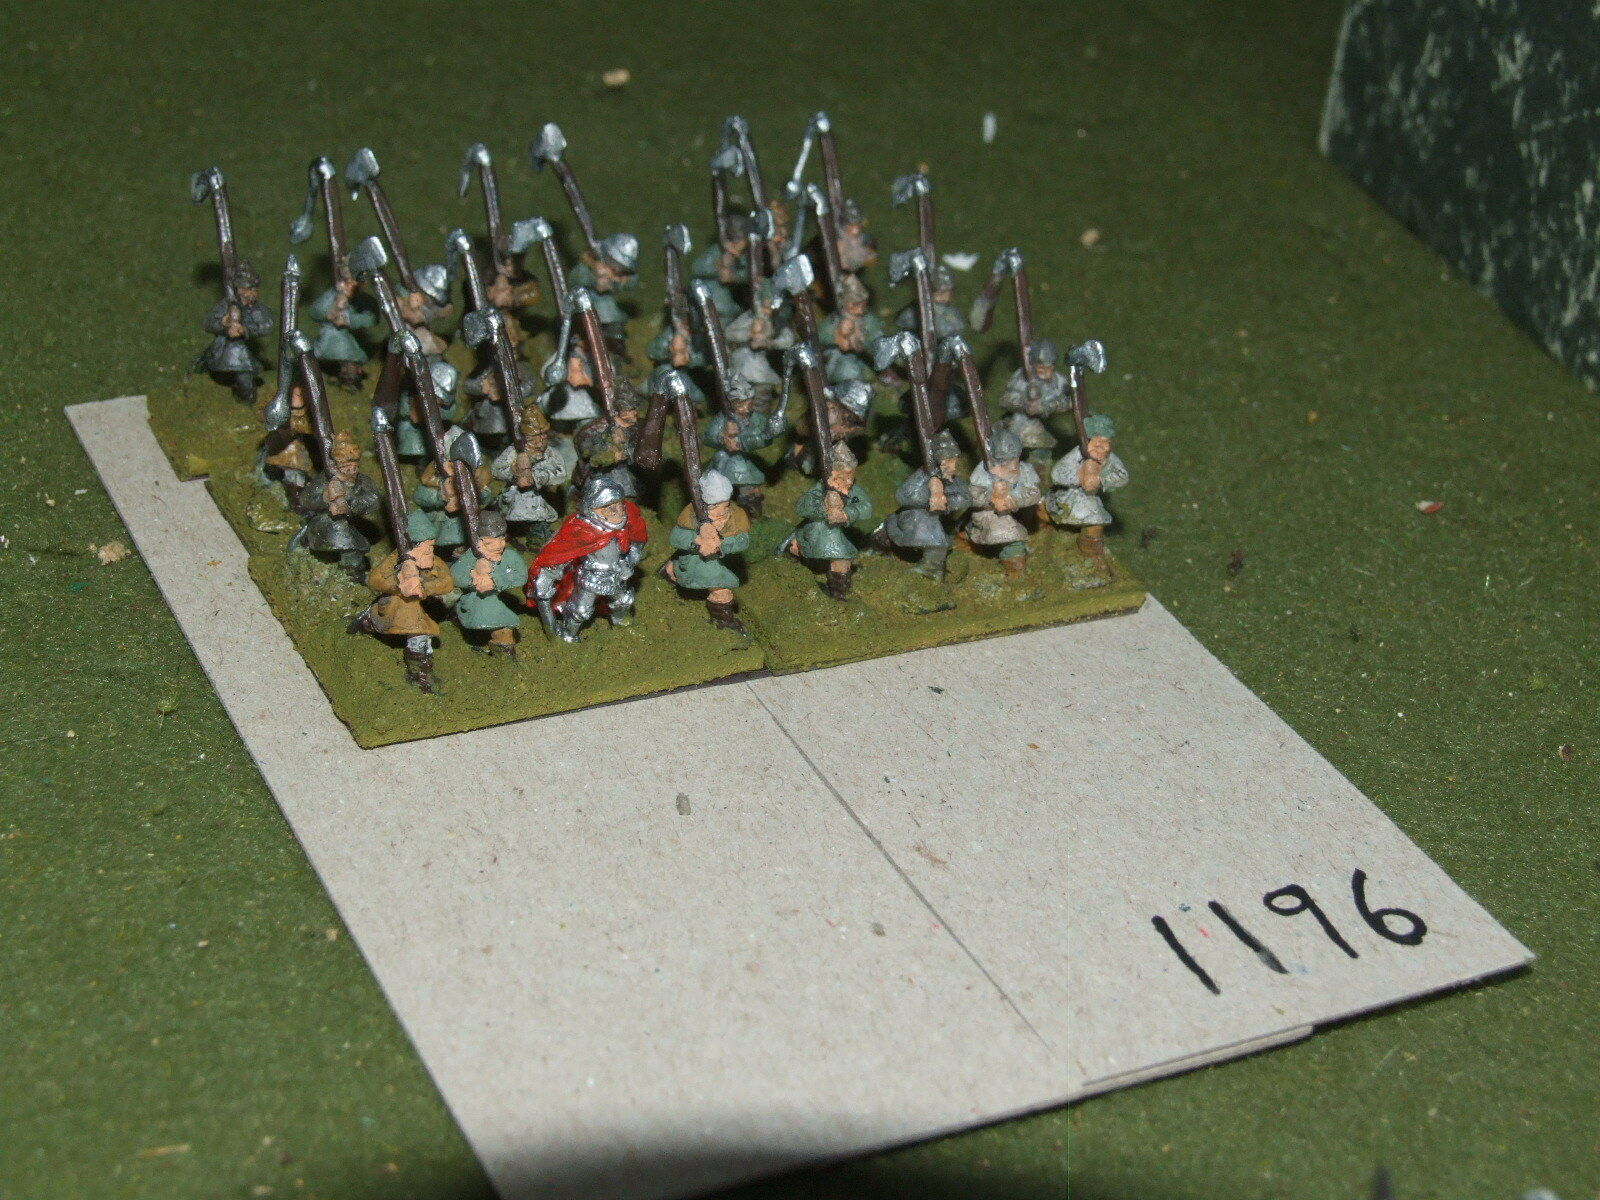 15mm medieval   hussite - Polearmsmen 32 Infantry - inf (A1196)